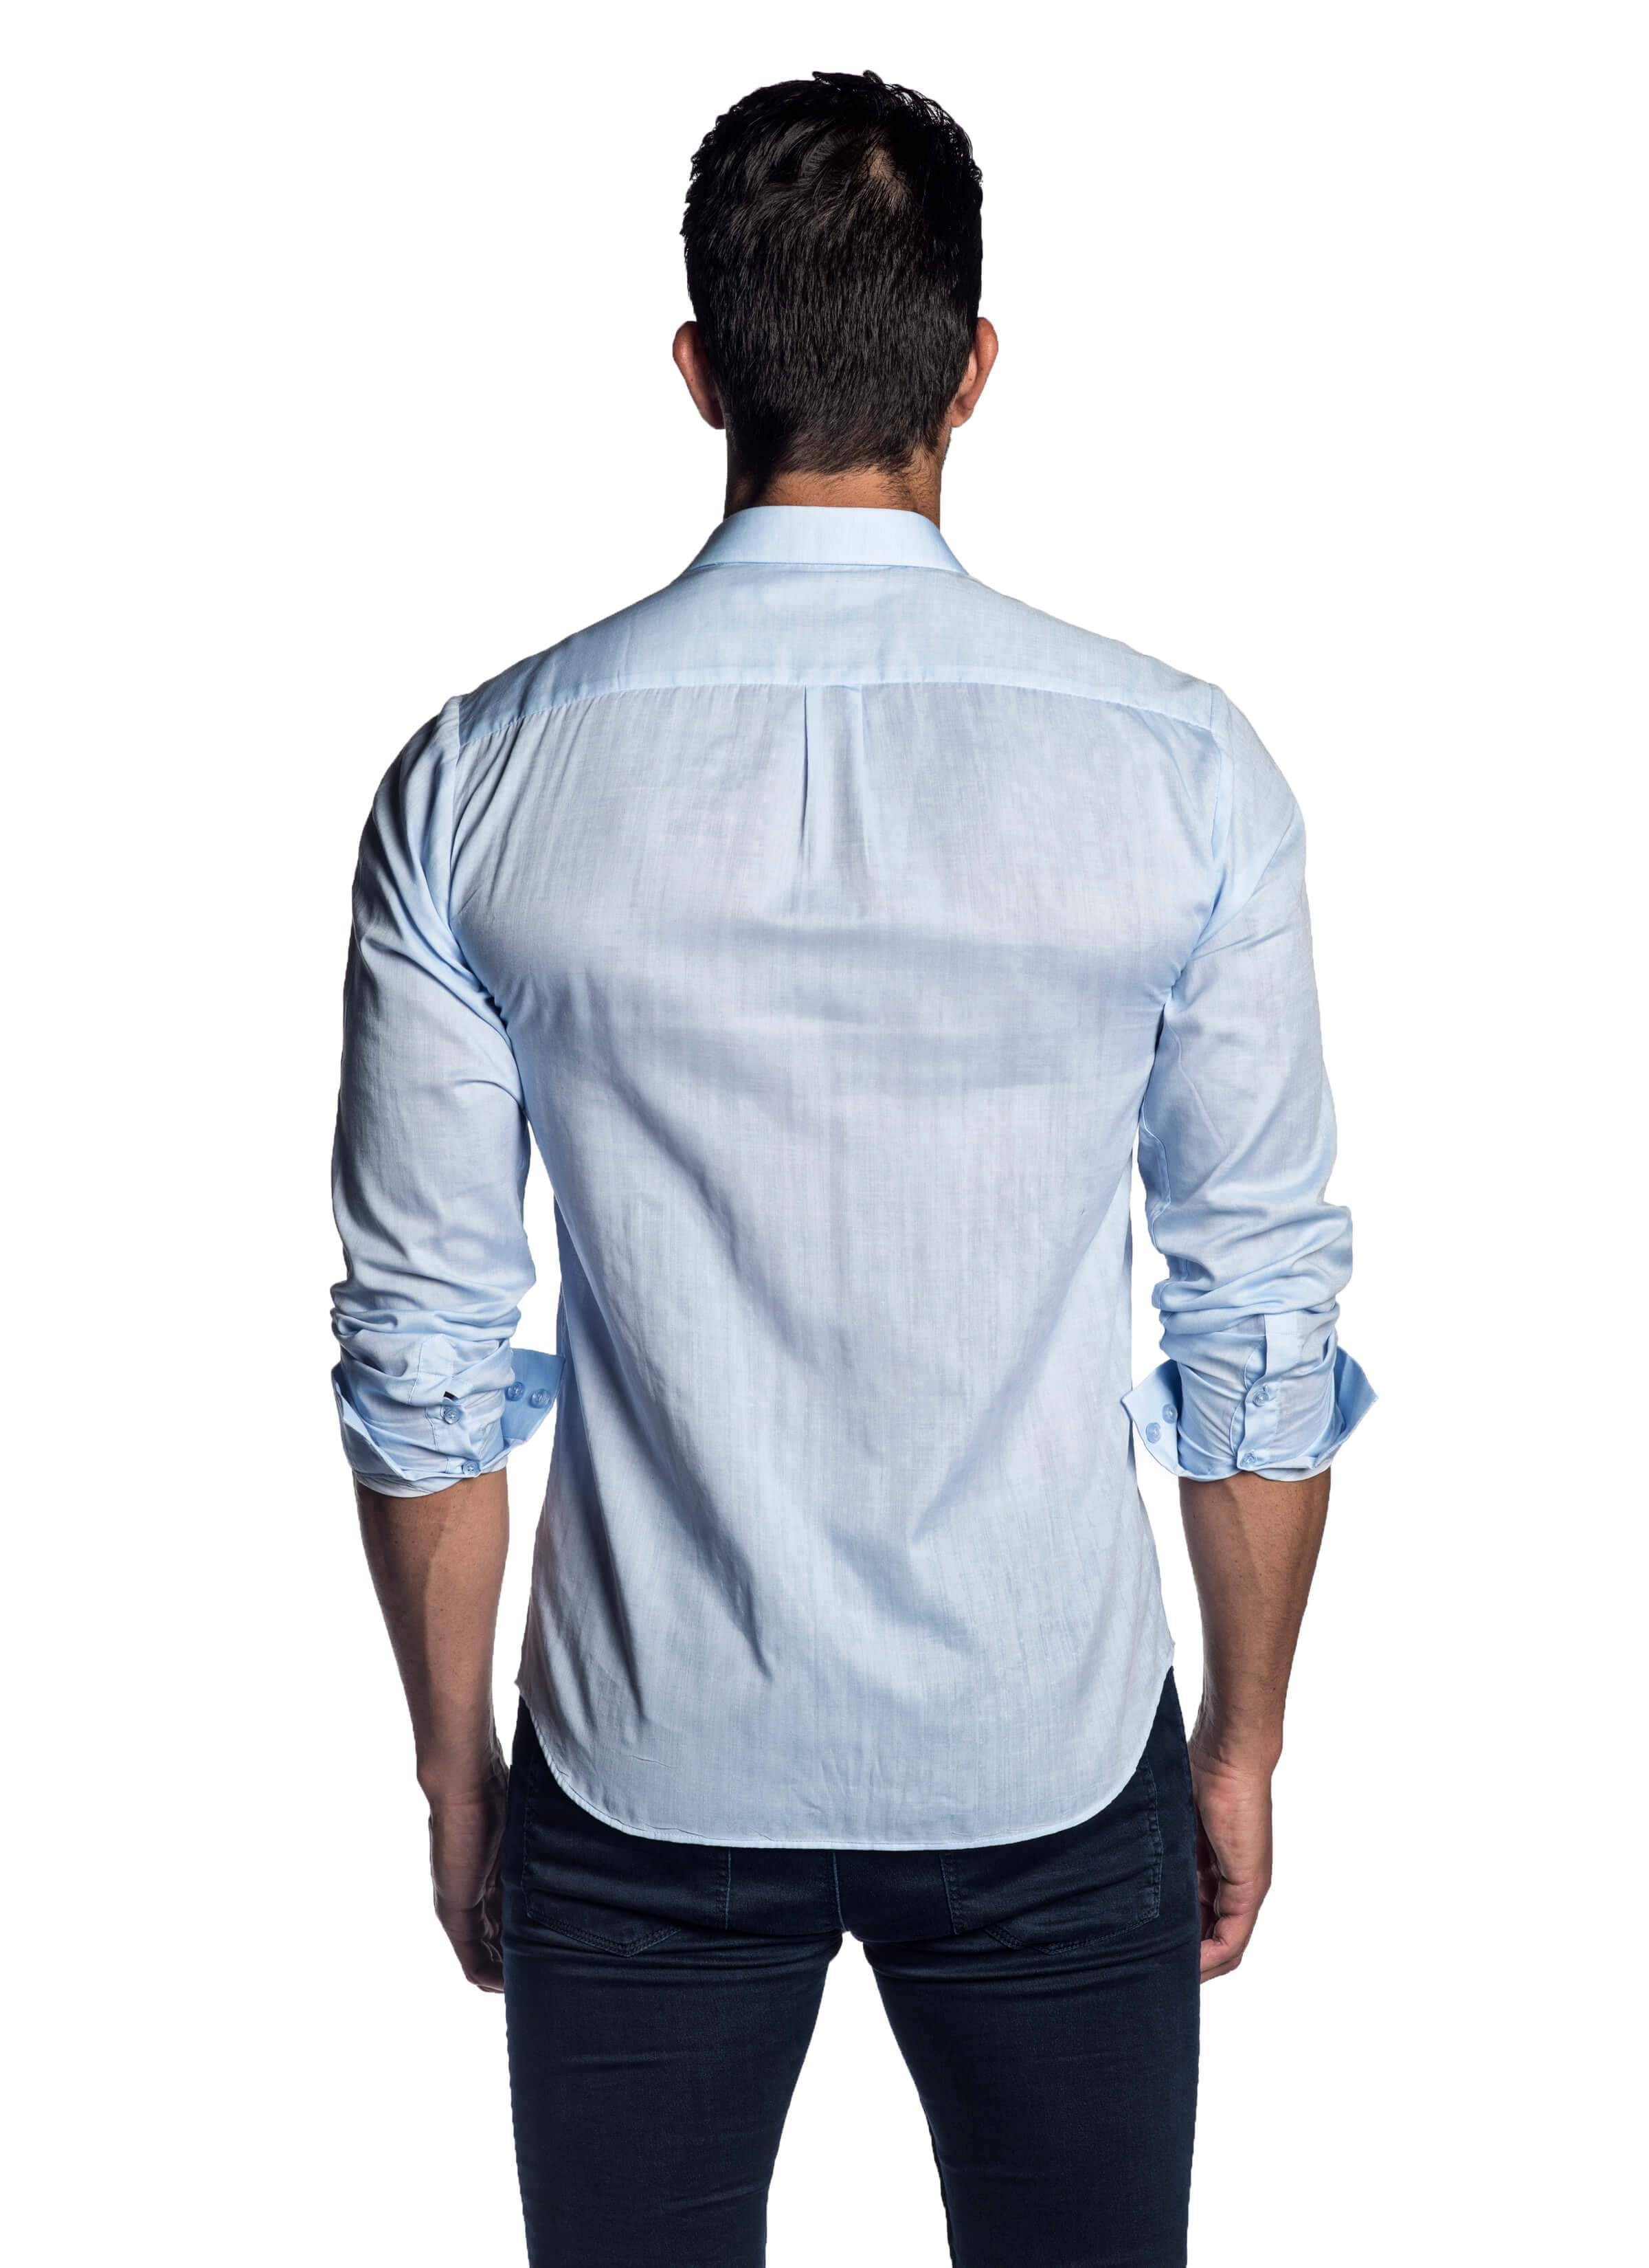 Light Blue Solid Shirt for Men - back AH-T-2032 - Jared Lang